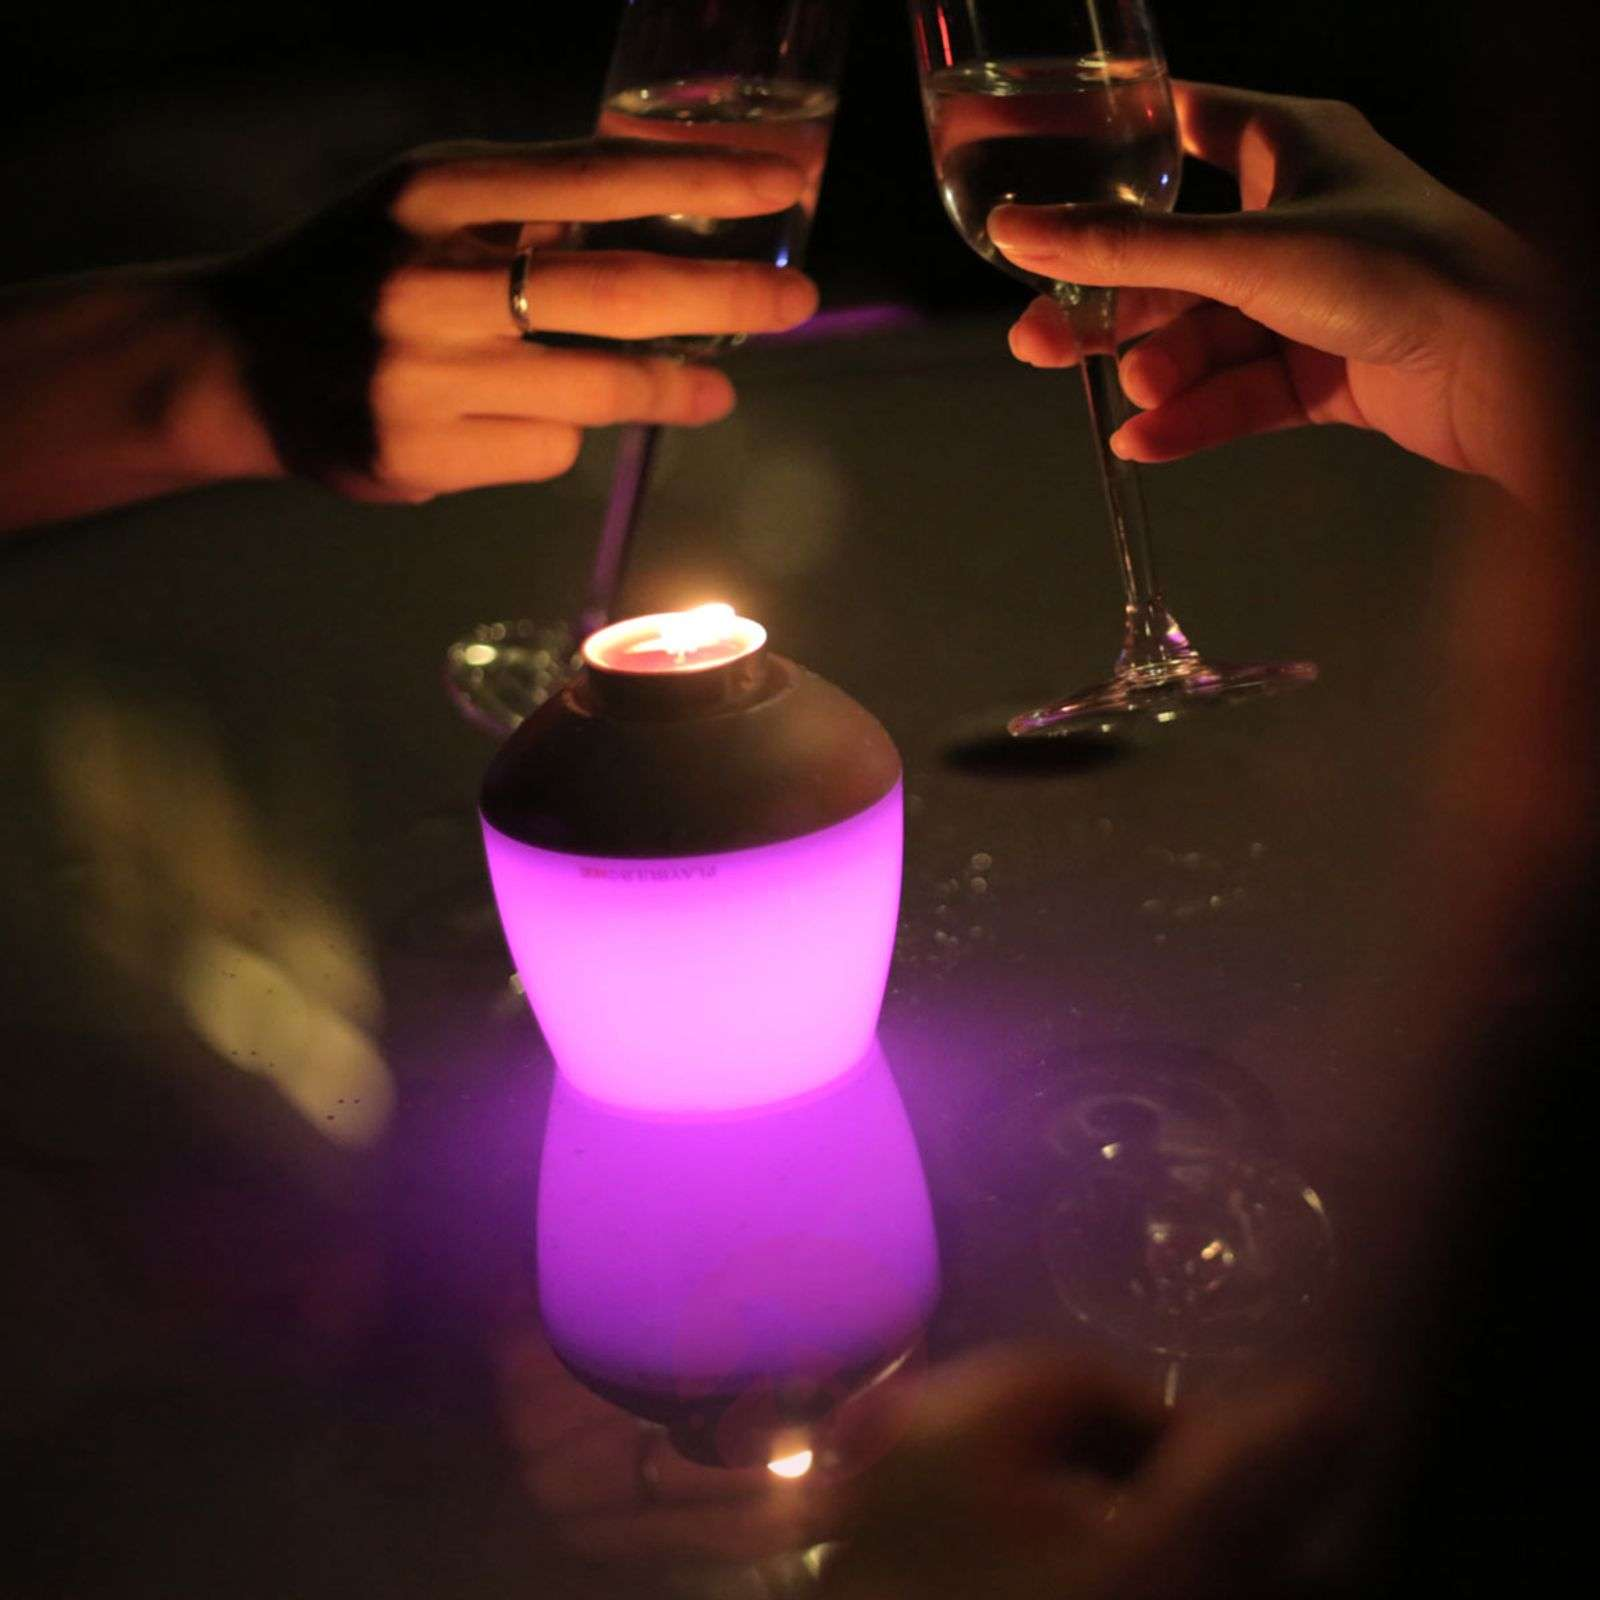 LED candle light Candle with colour change-9018036-01